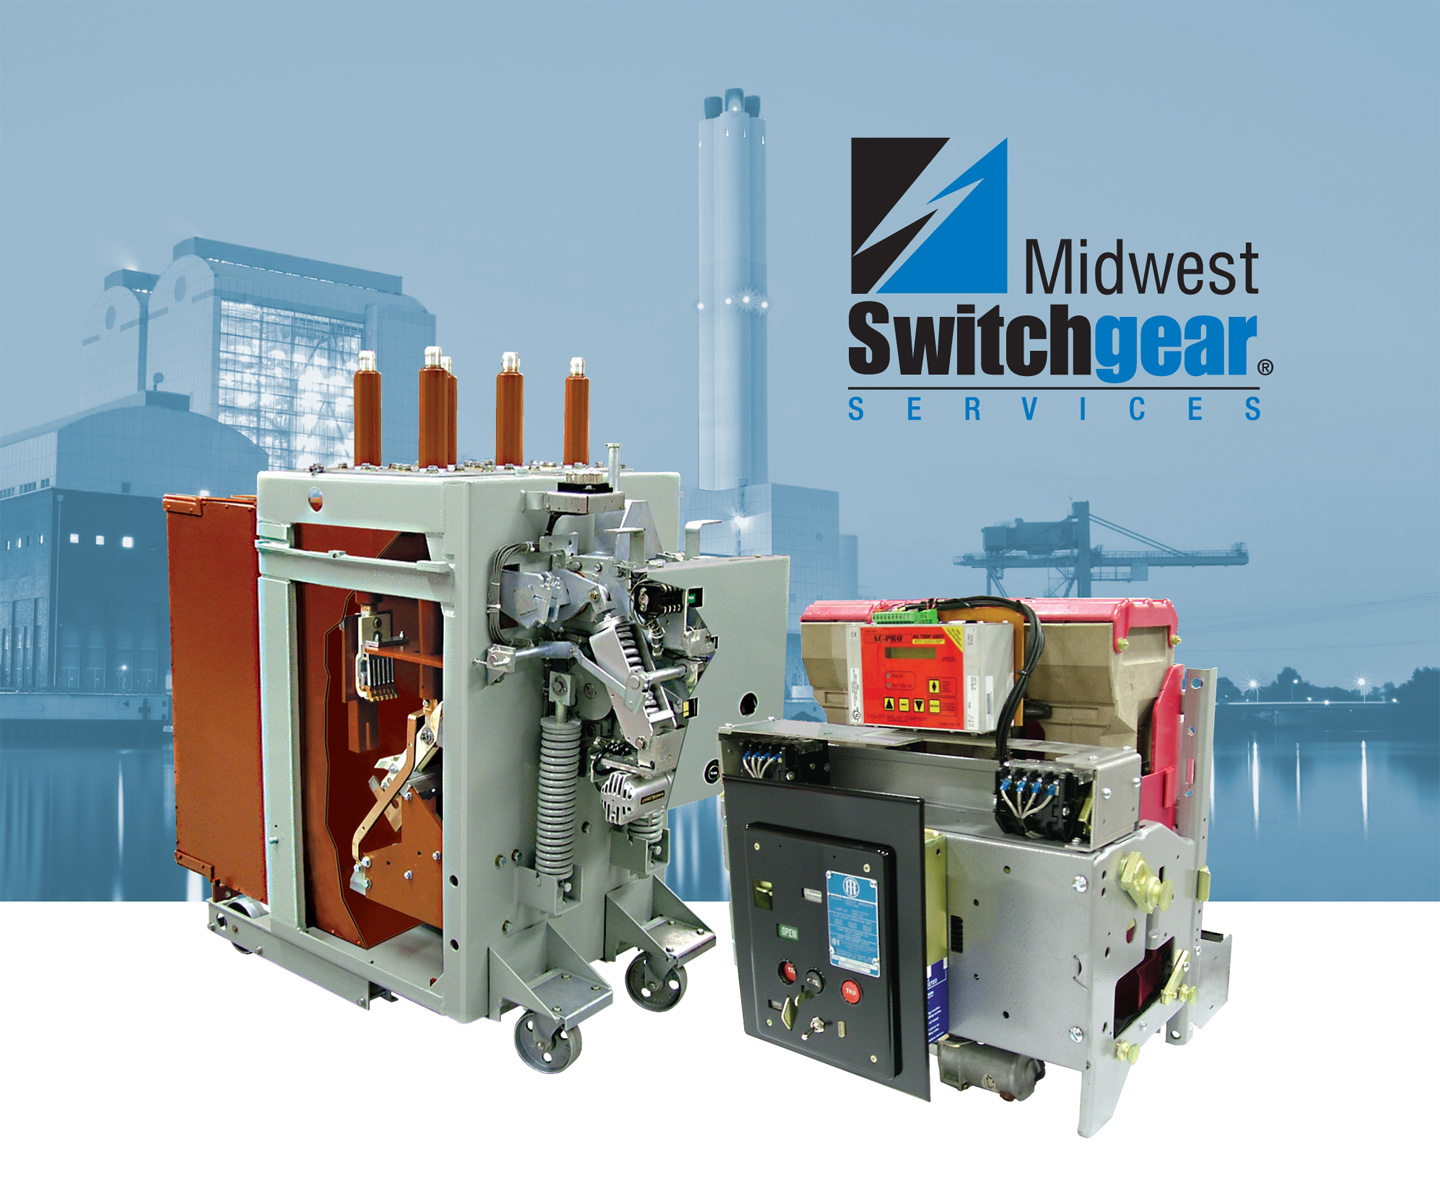 Midwest Switchgear Home Circuit Breakers We Specialize In Preventative Maintenance And Testing Of All Electrical Apparatus 600 Volt Through 15kv Including Transformers